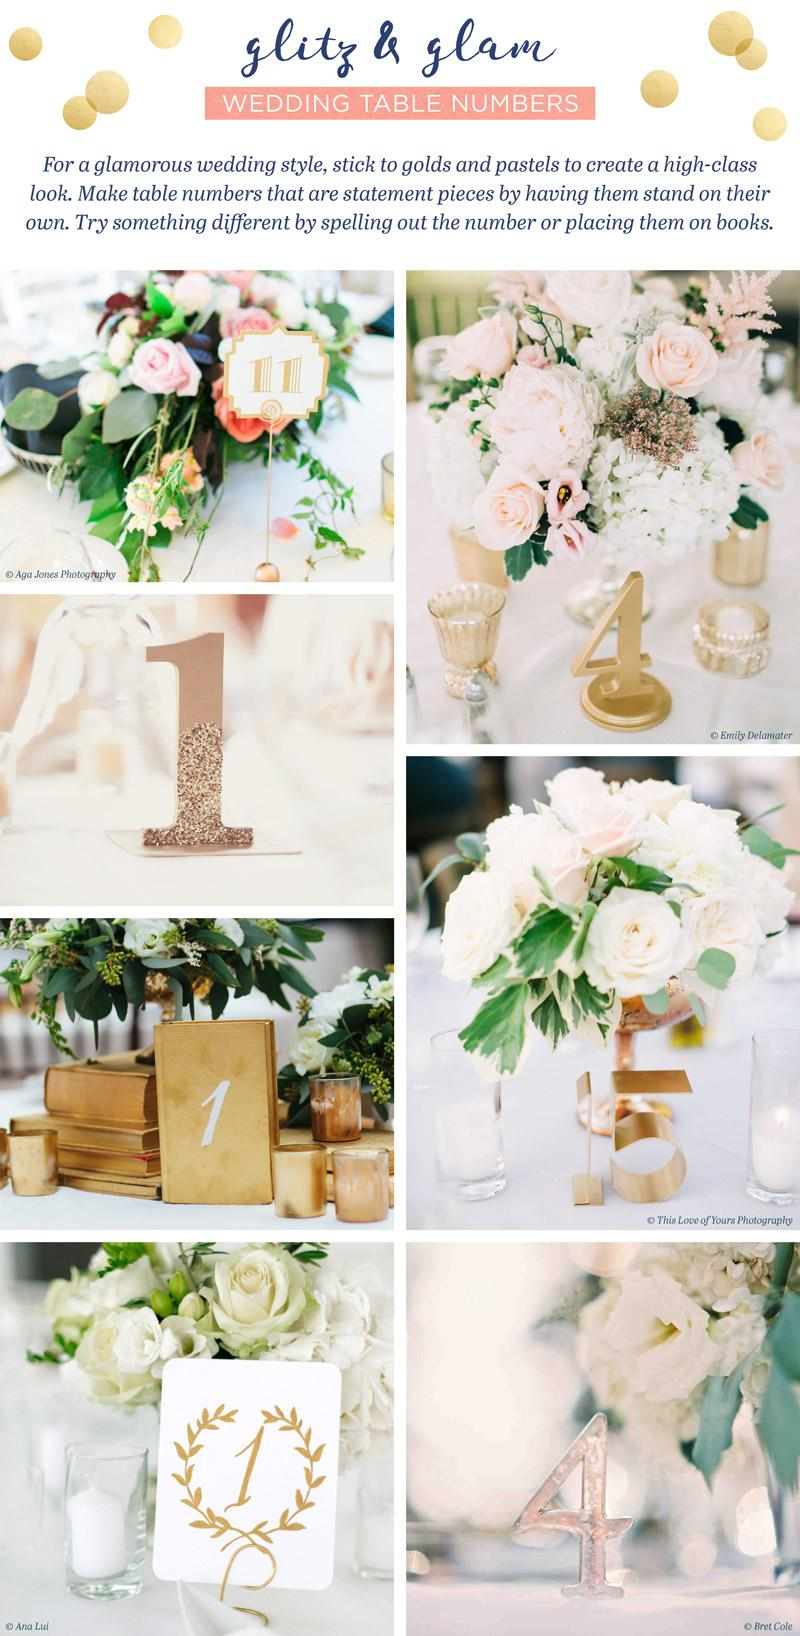 28 Unique Wedding Table Number Ideas Philly In Love